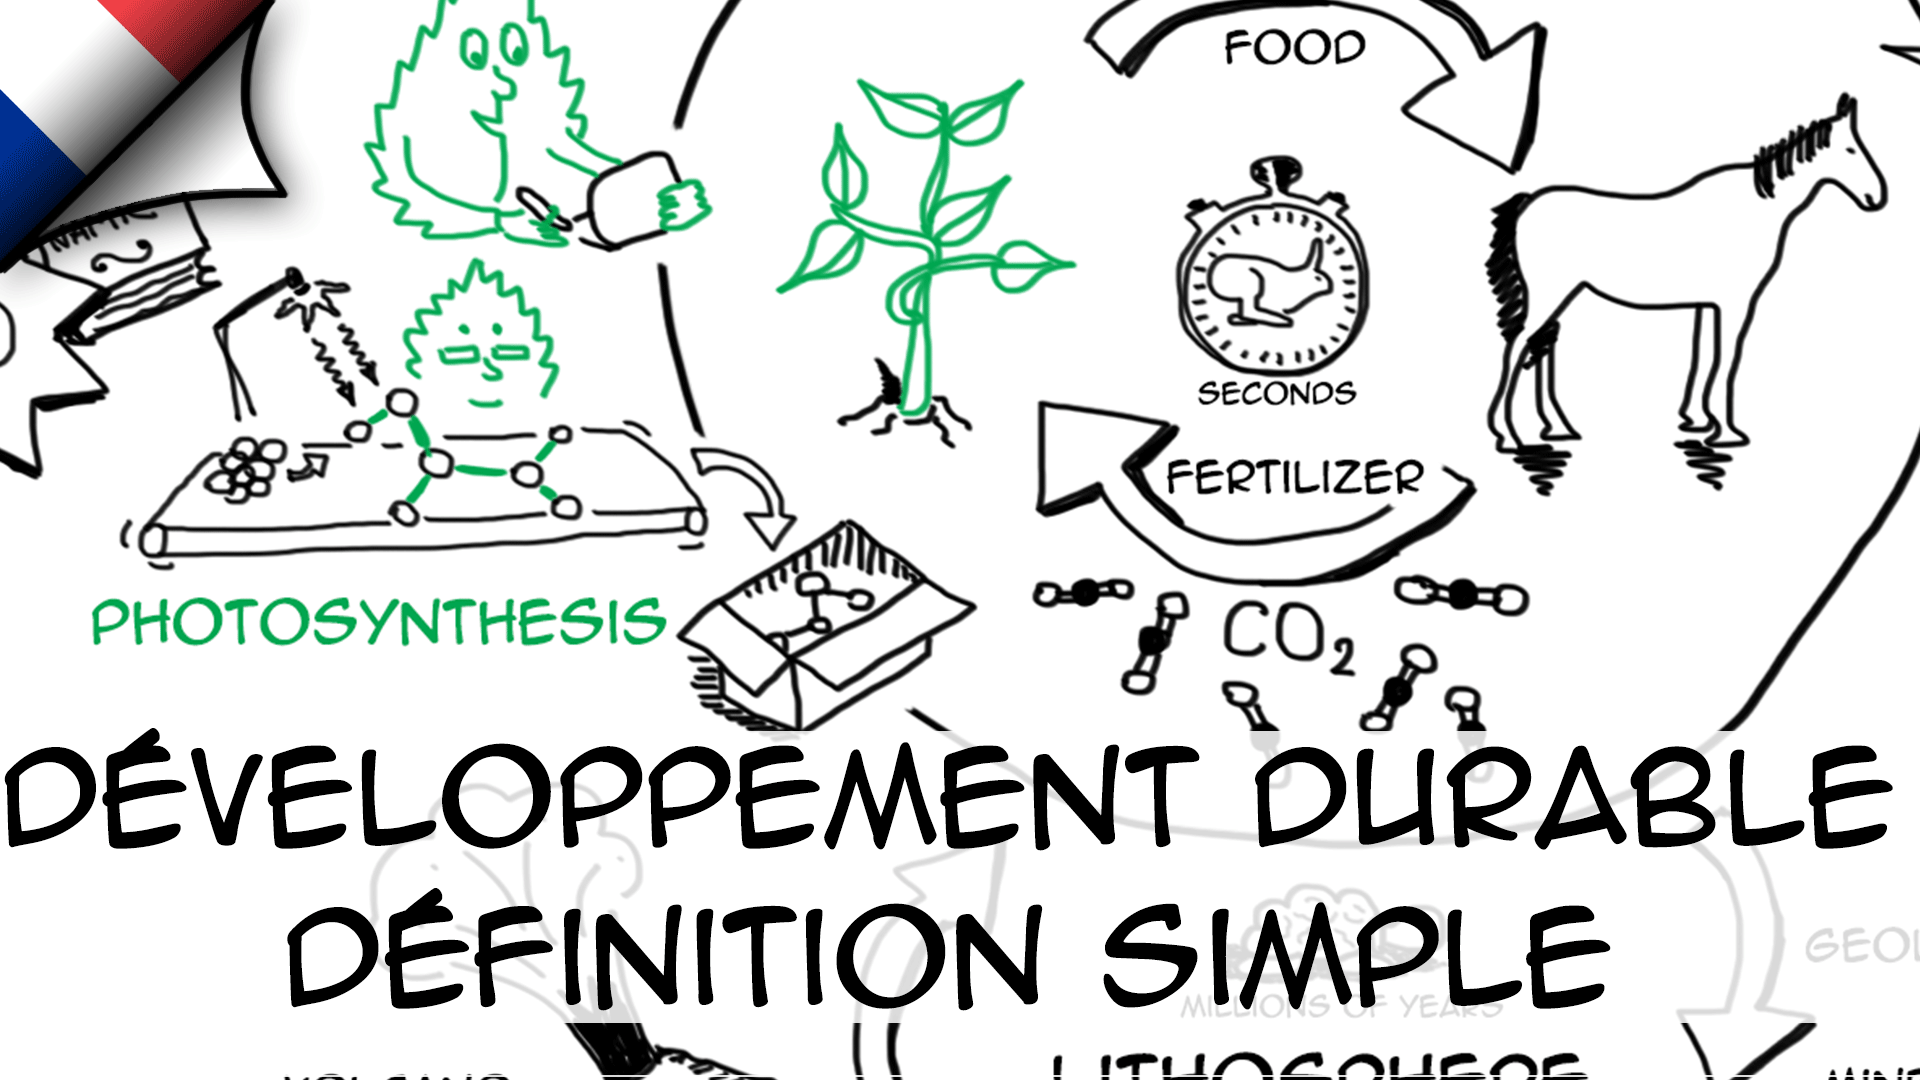 Développement durable: définition scientifique simple